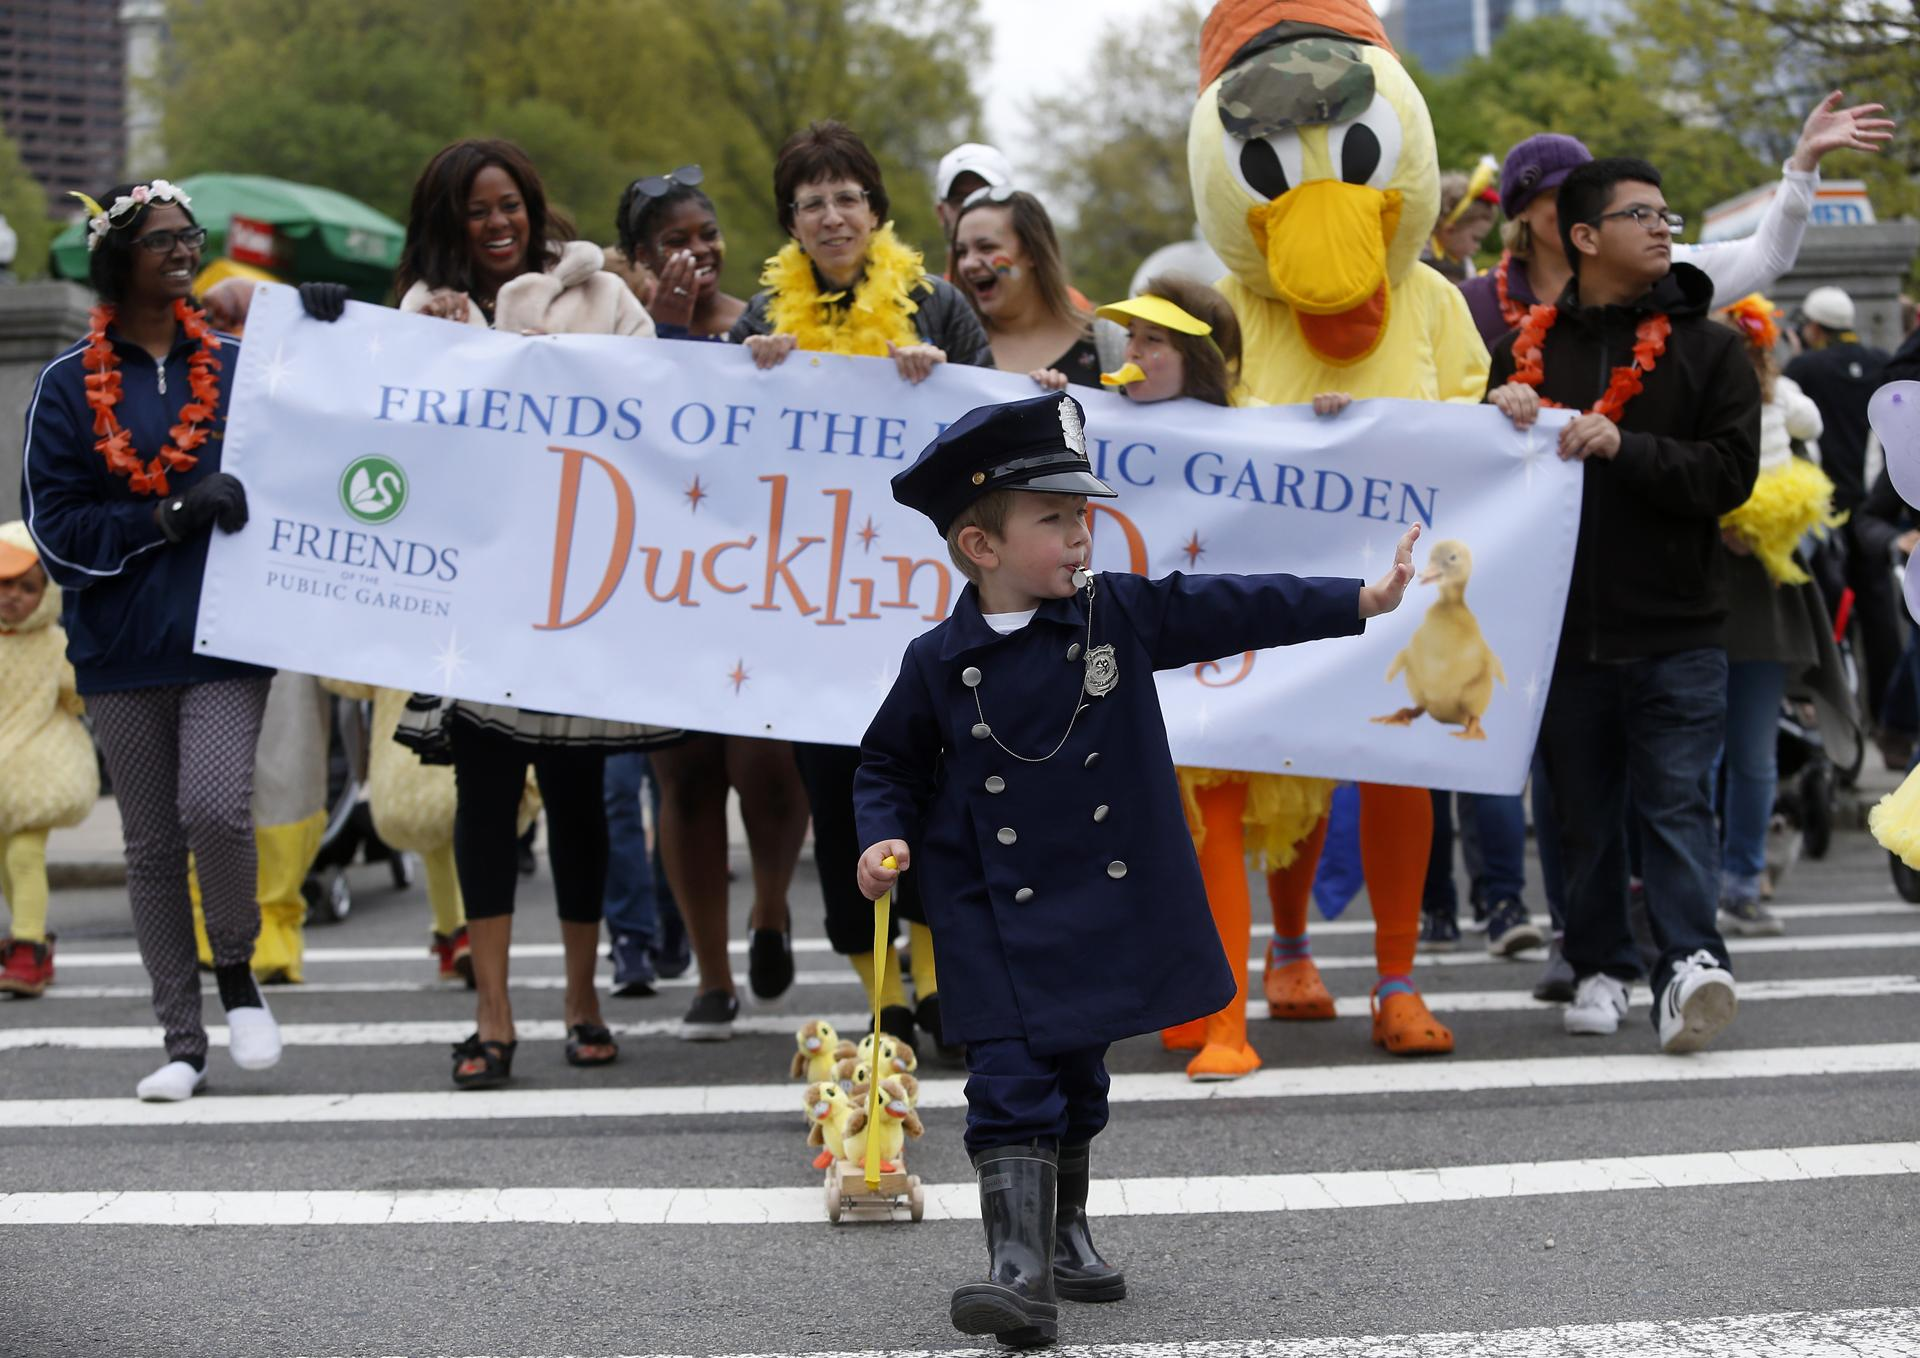 "Jonathan Krygowski, 4, of Westford, blew the whistle as he led the Duckling Day parade dressed as Michael from the children's story, ""Make Way for Ducklings."""